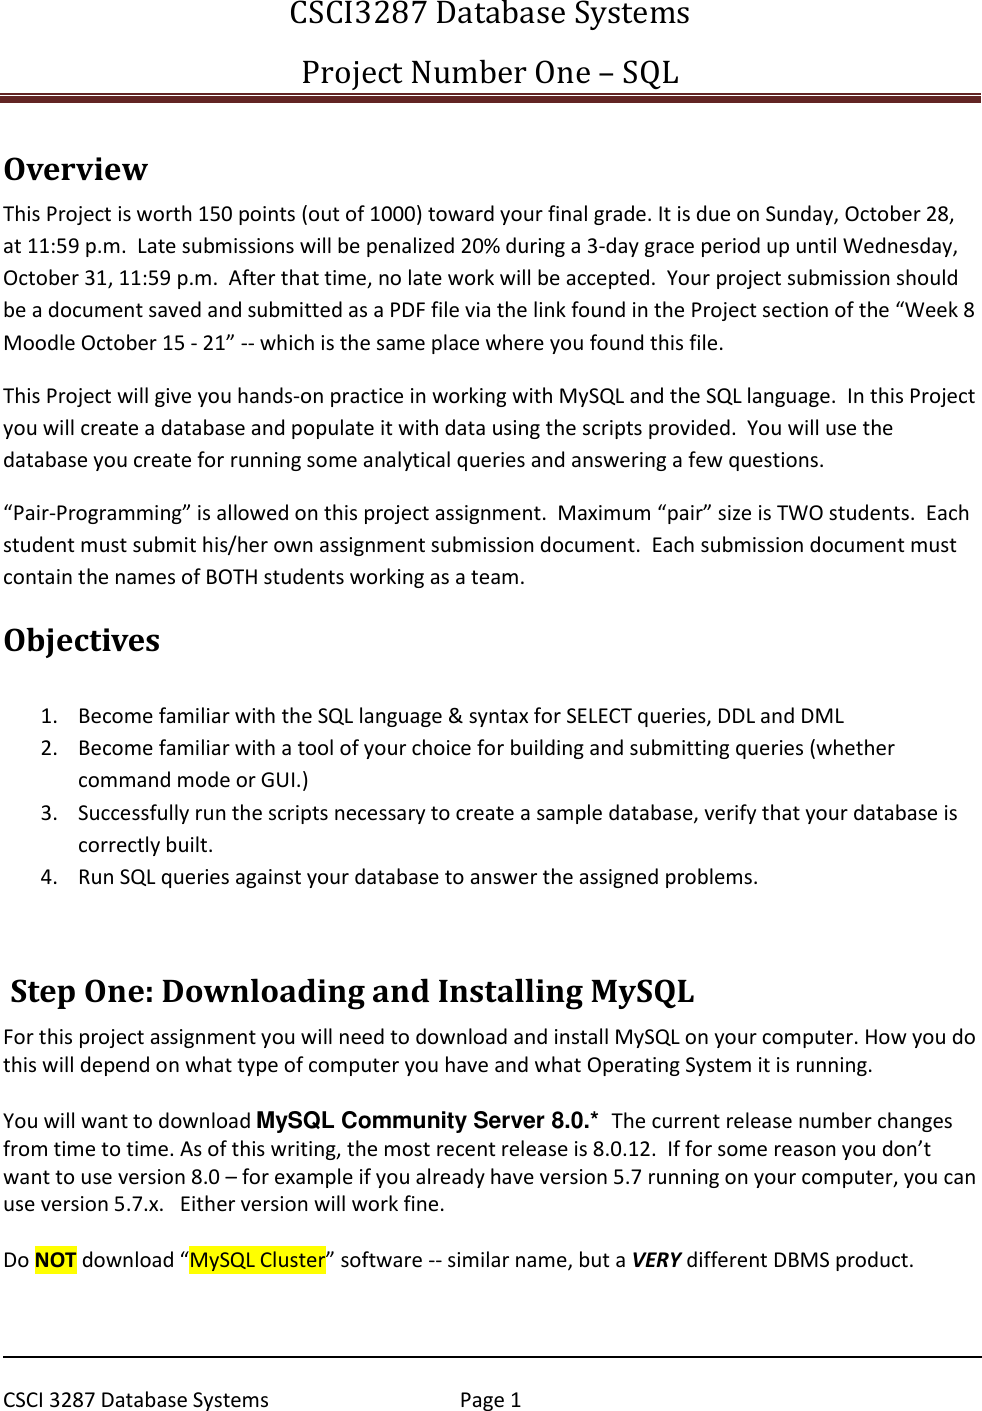 CTS330 Lab # 1 – Getting Started With SQL Server Project One